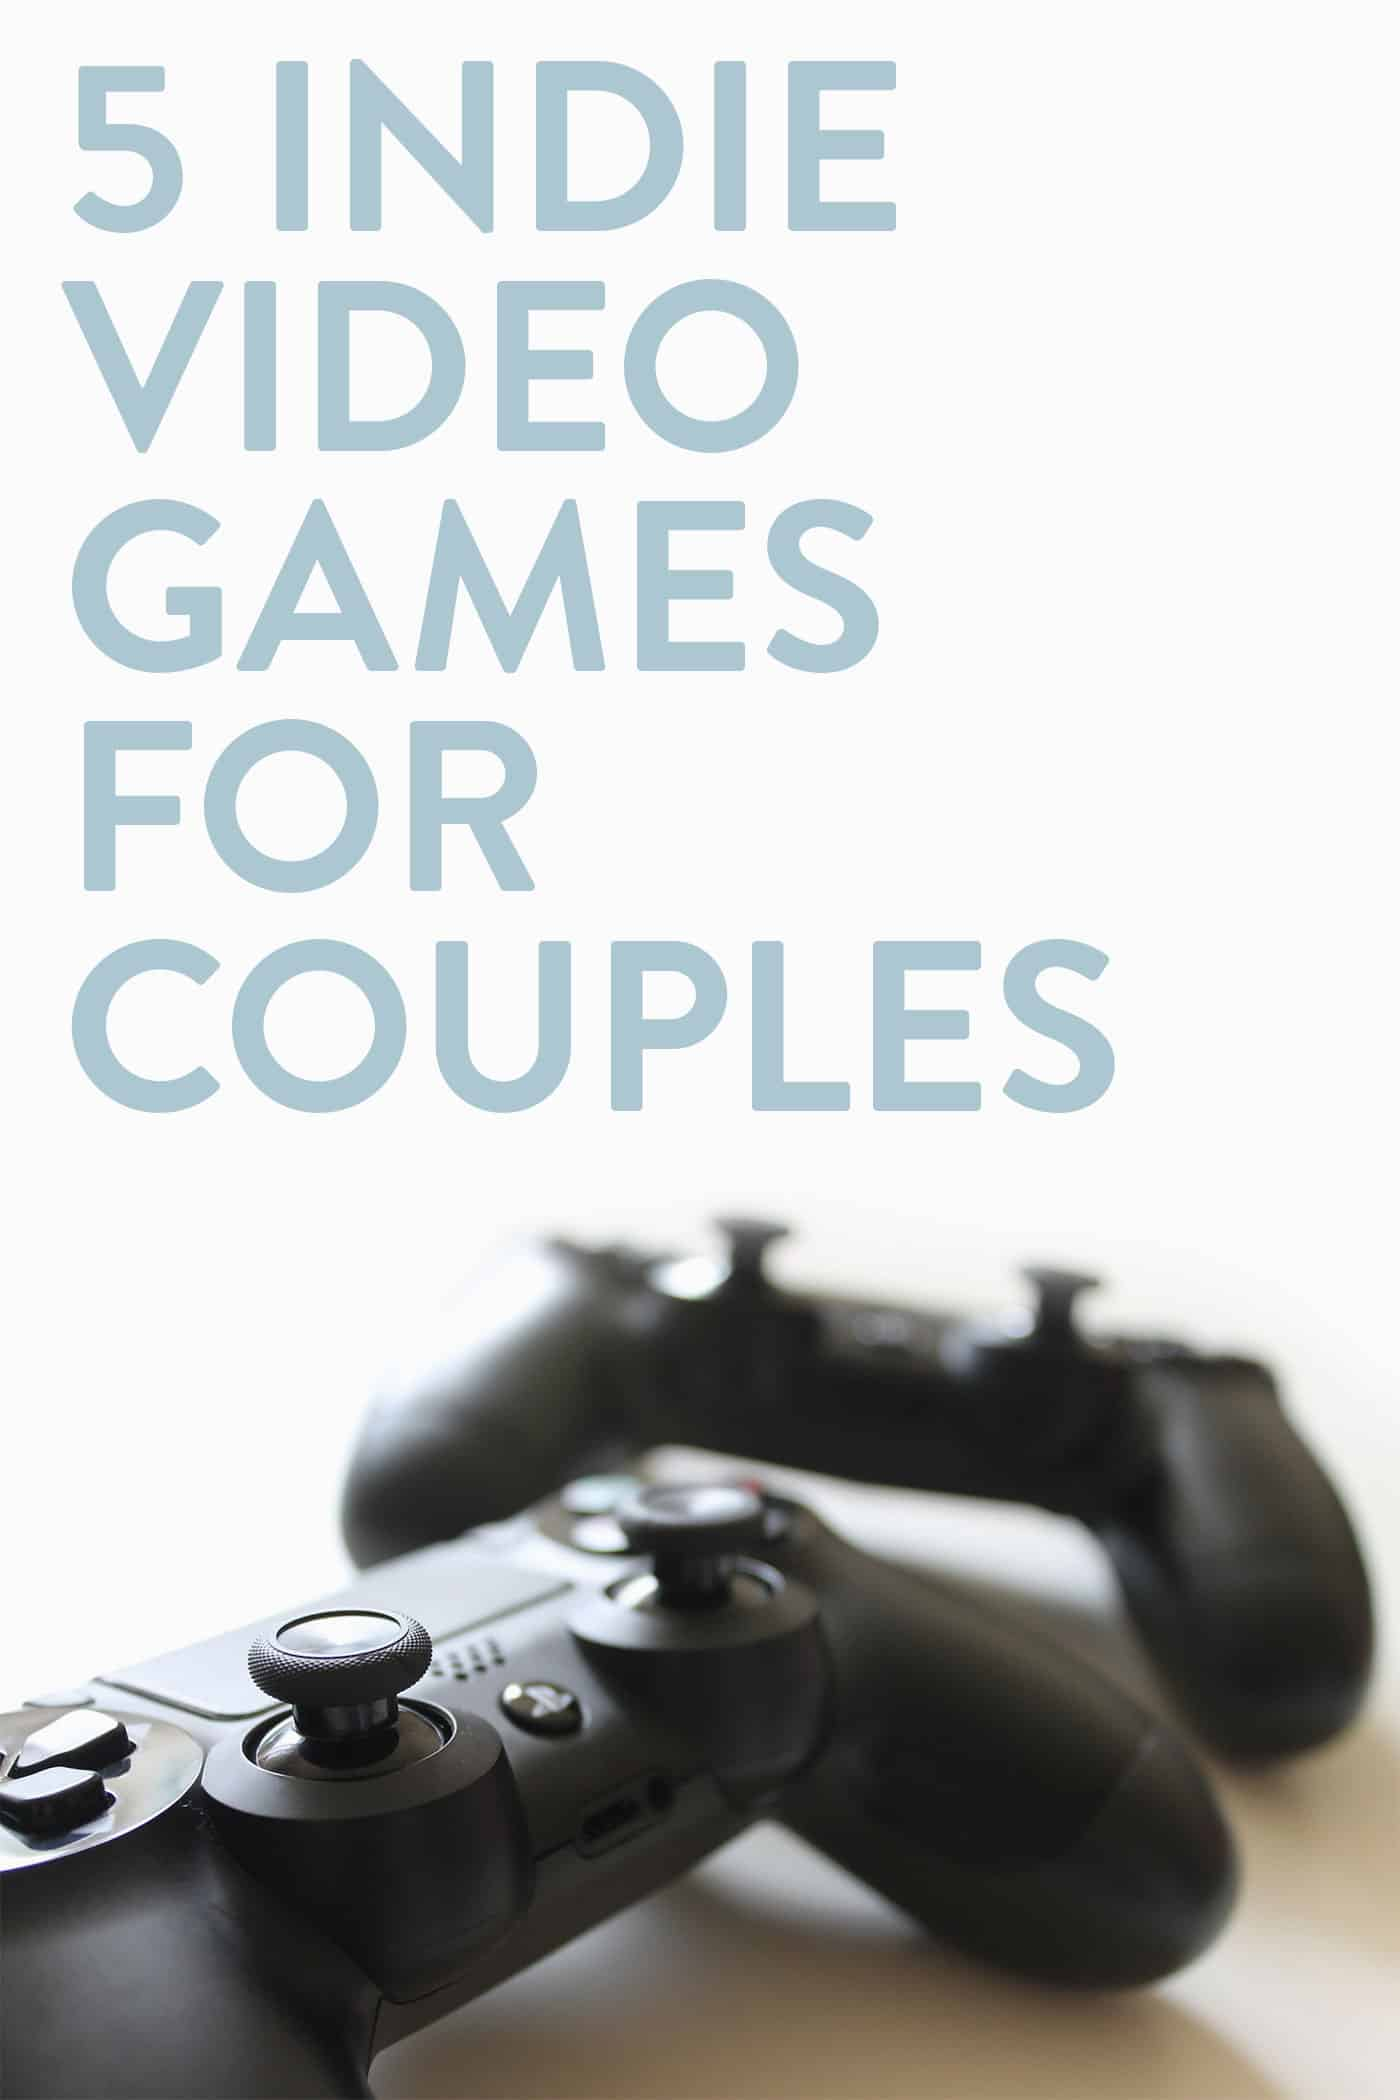 These indie video games for couples are a great way to bond with some friendly competition. Pretty graphics and compelling stories make these two-player experiences enjoyable for gamers of any ability. (via feastandwest.com)